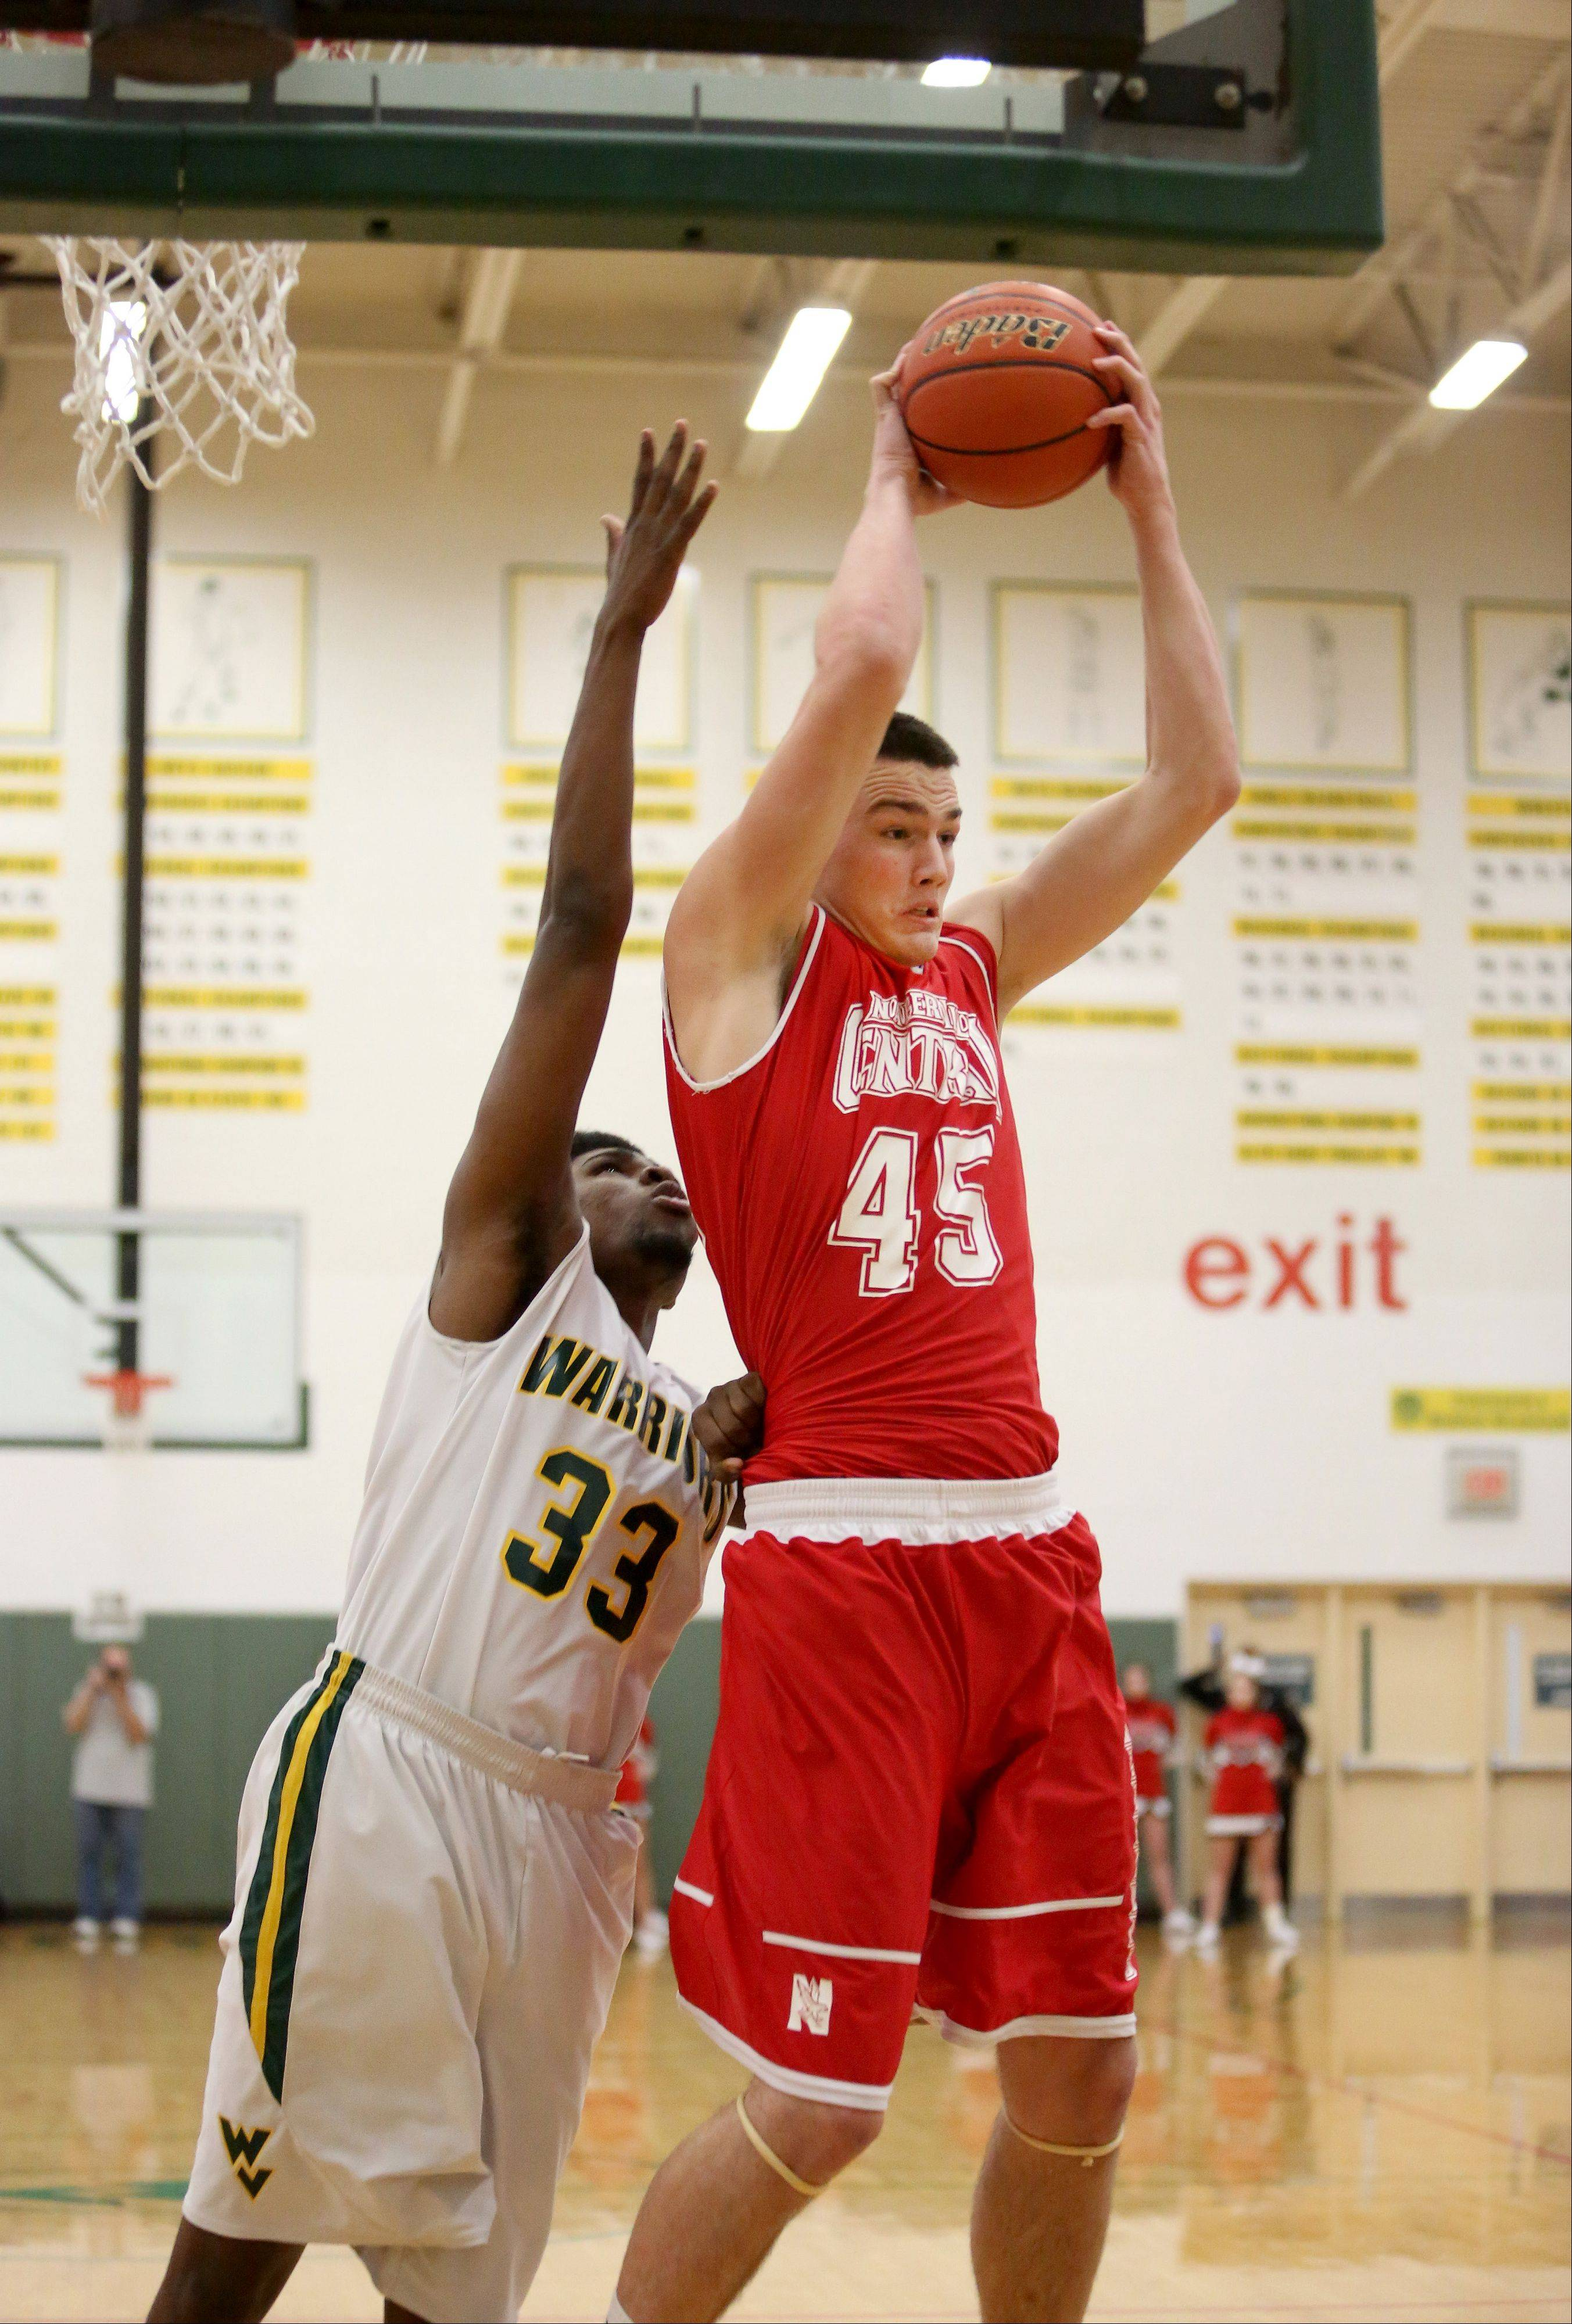 Nick Czarnowski of Naperville Central get the rebound over Javares Stewart of Waubonsie Valley, left, in boys basketball action on Tuesday in Aurora.